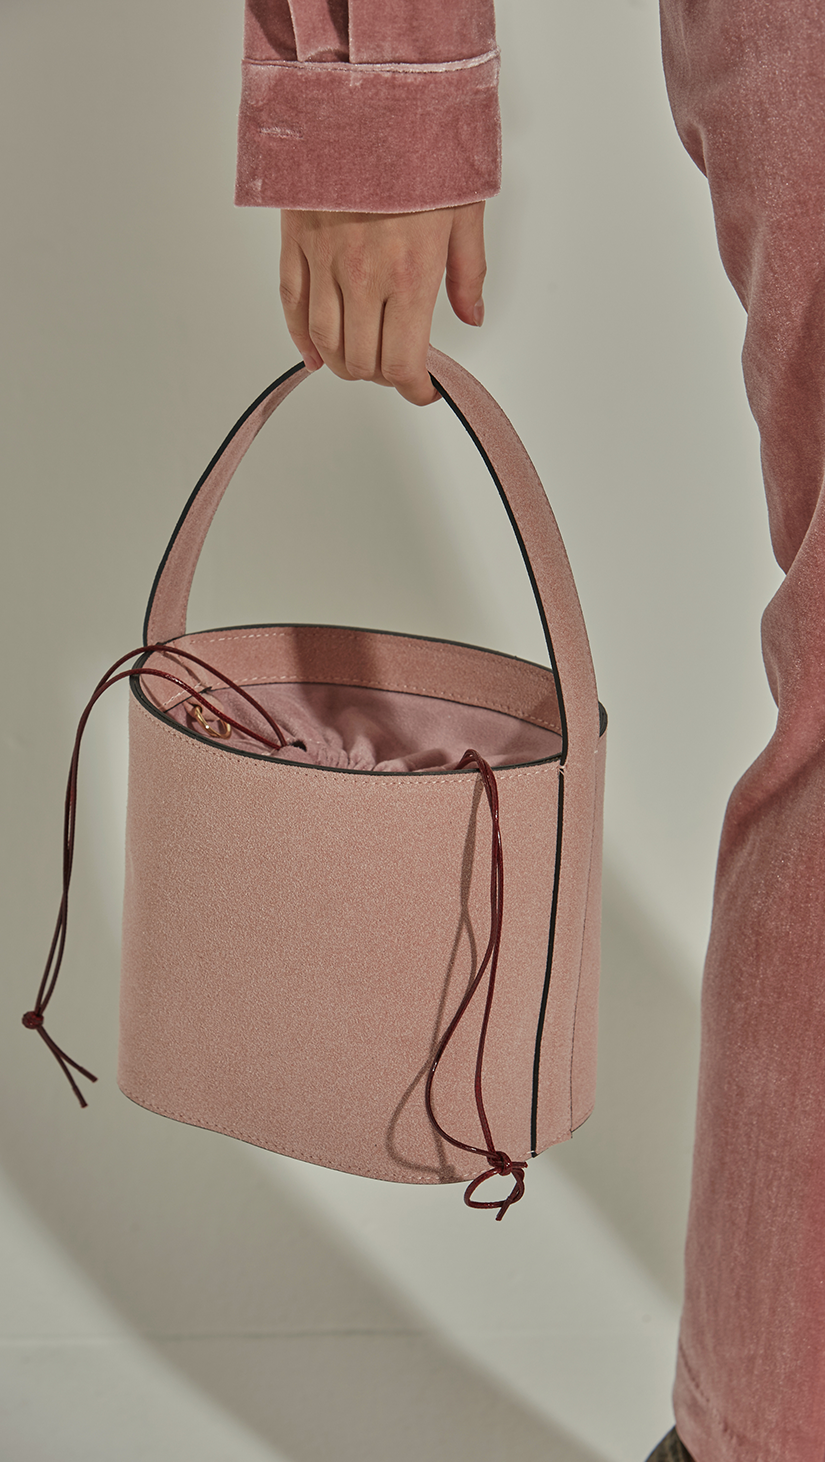 Seed Bucket bag in Pale Pink. Main compartment with adjustable strap, detachable shoulder strap, interior pocket with zipper compartment. Structured bottom.